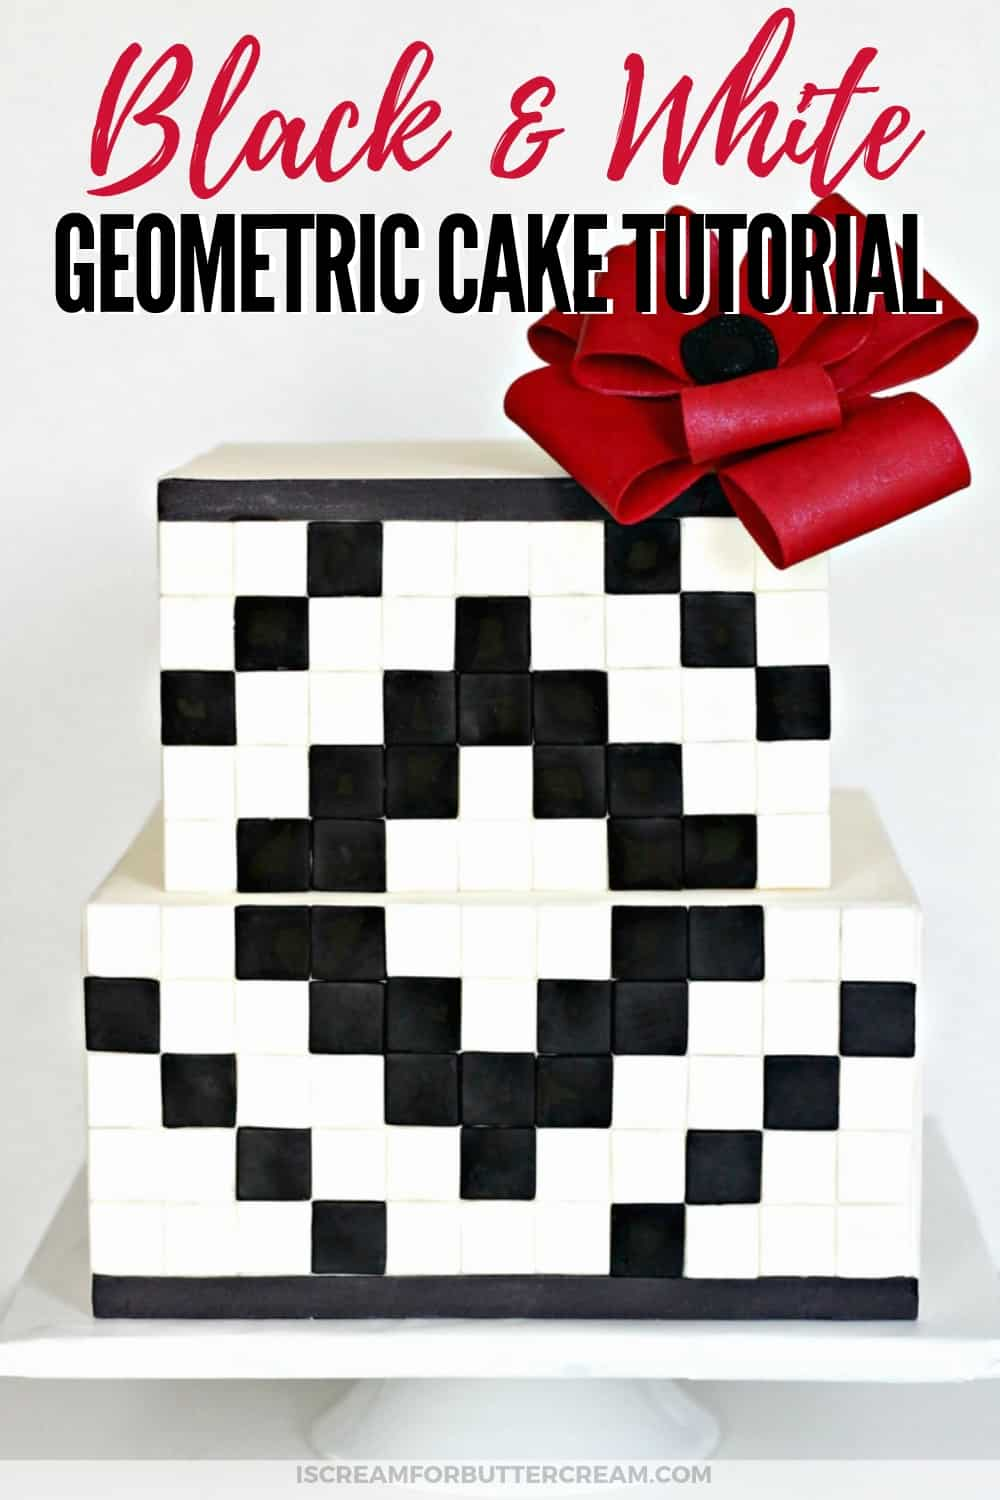 Black and White Geometric Cake Tutorial new Pin 1